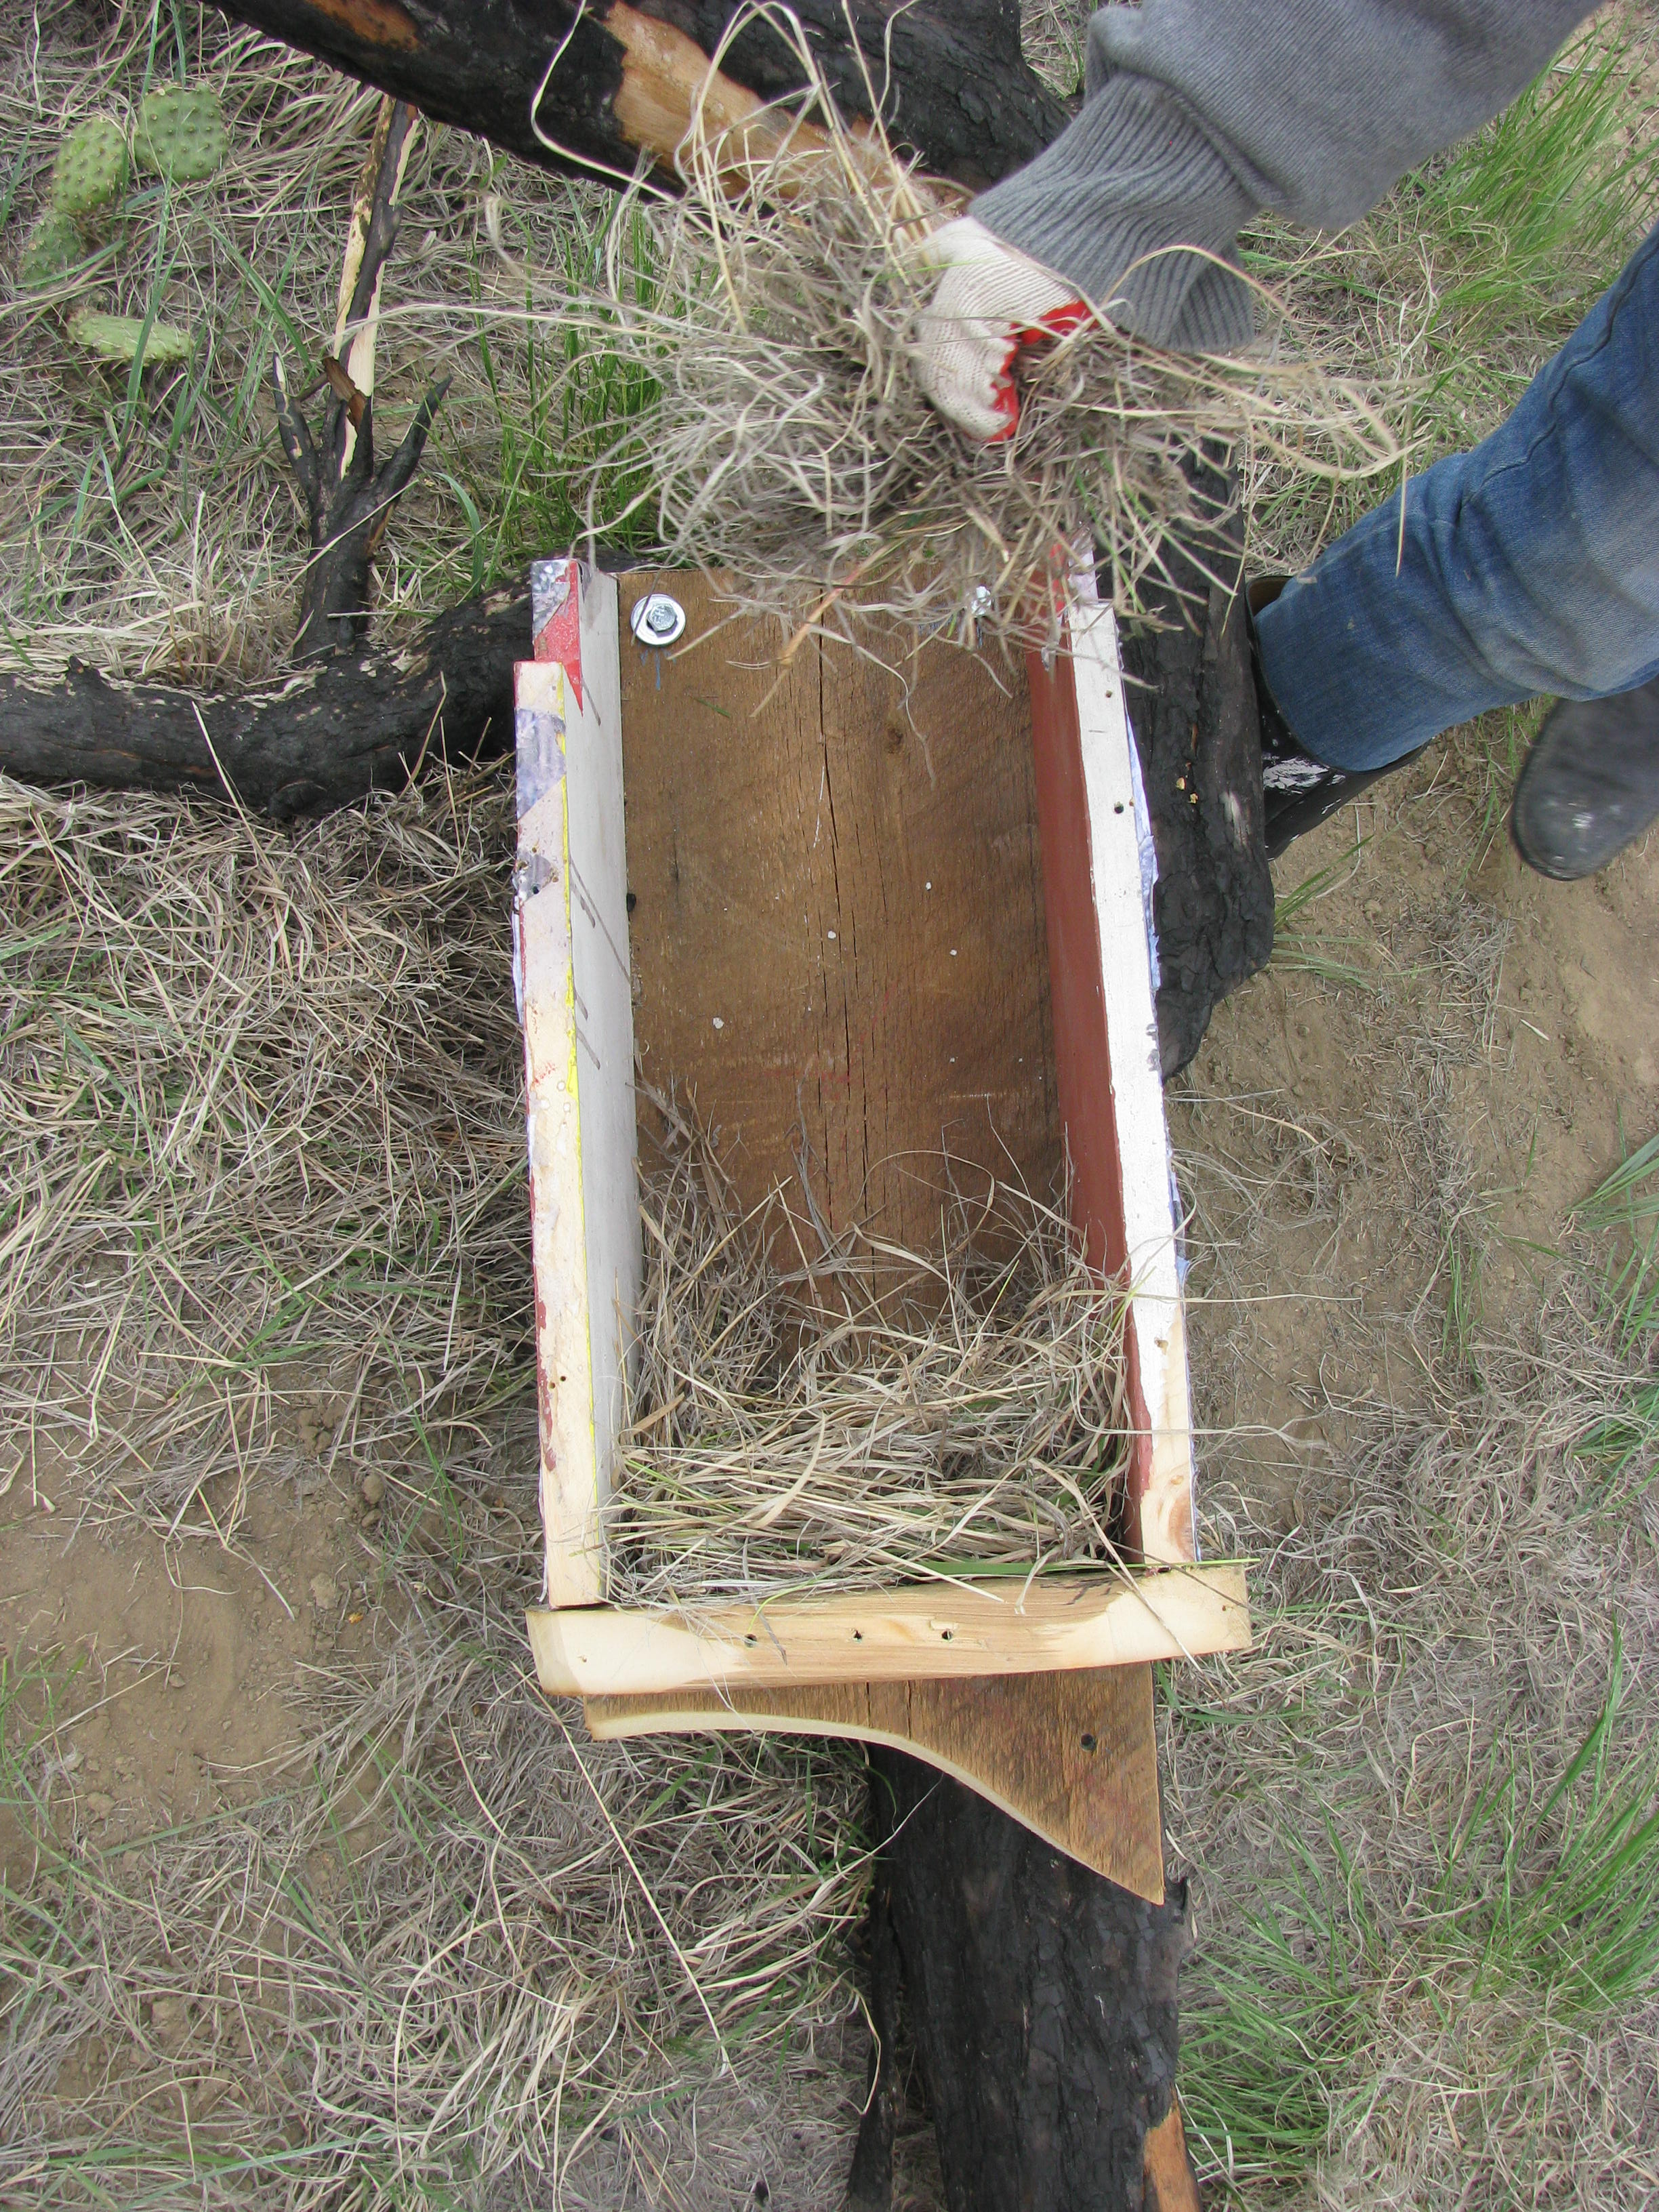 Preparing the Kestrel Box